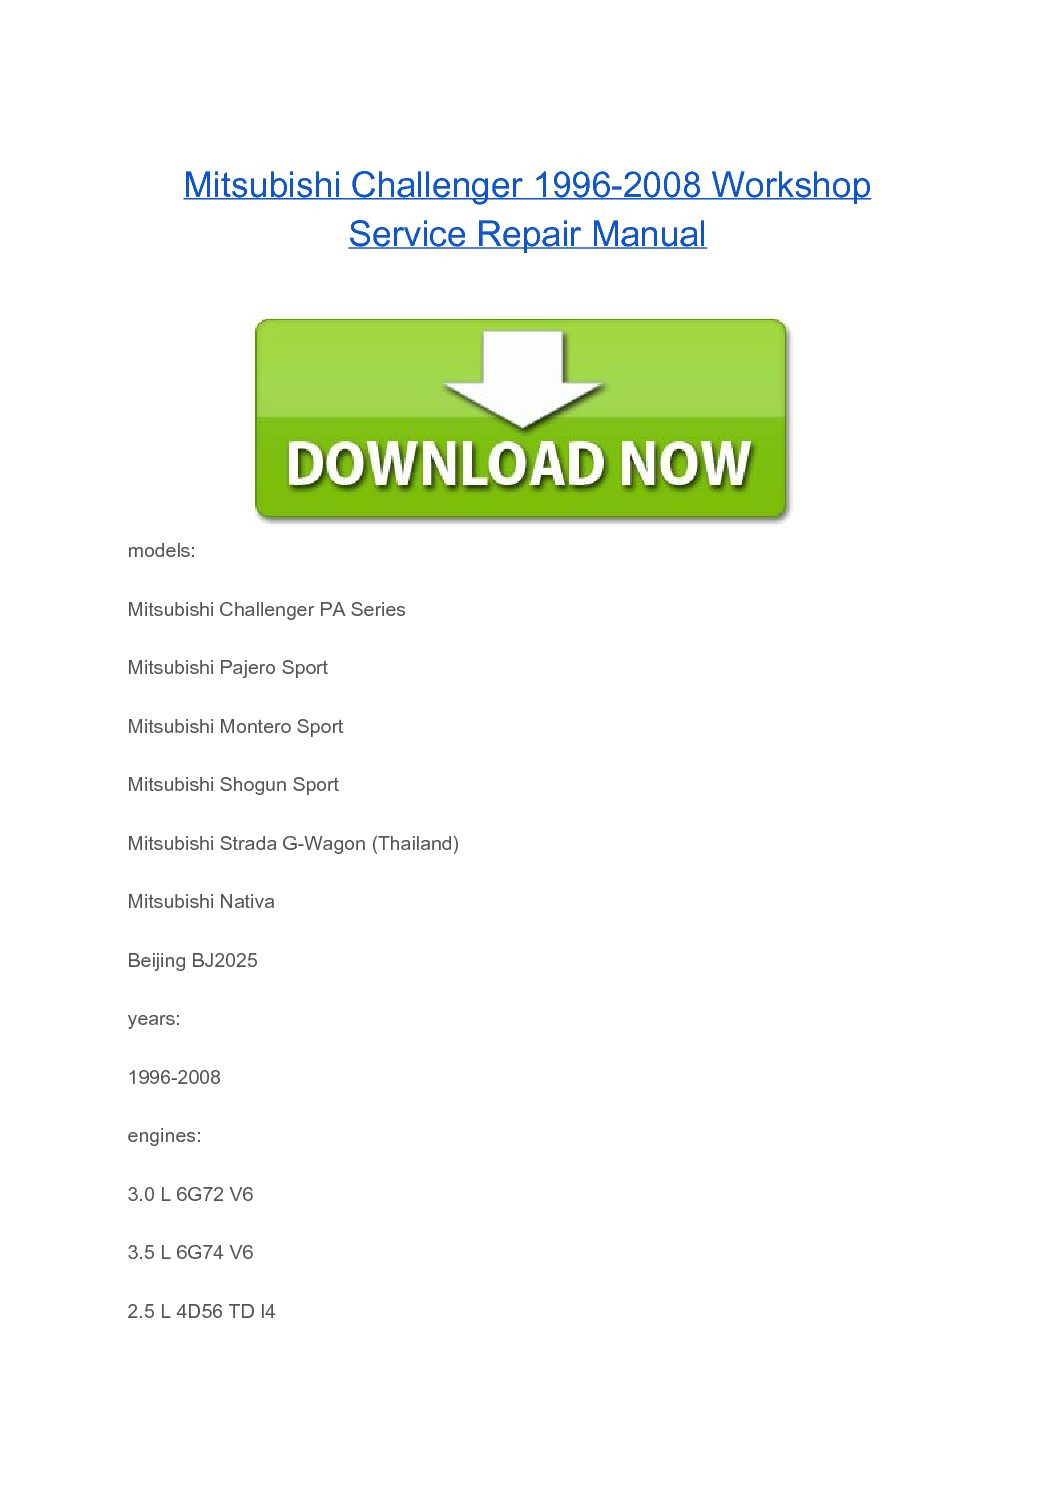 Mitsubishi Challenger 1996-2008 Workshop Service Repair Manual